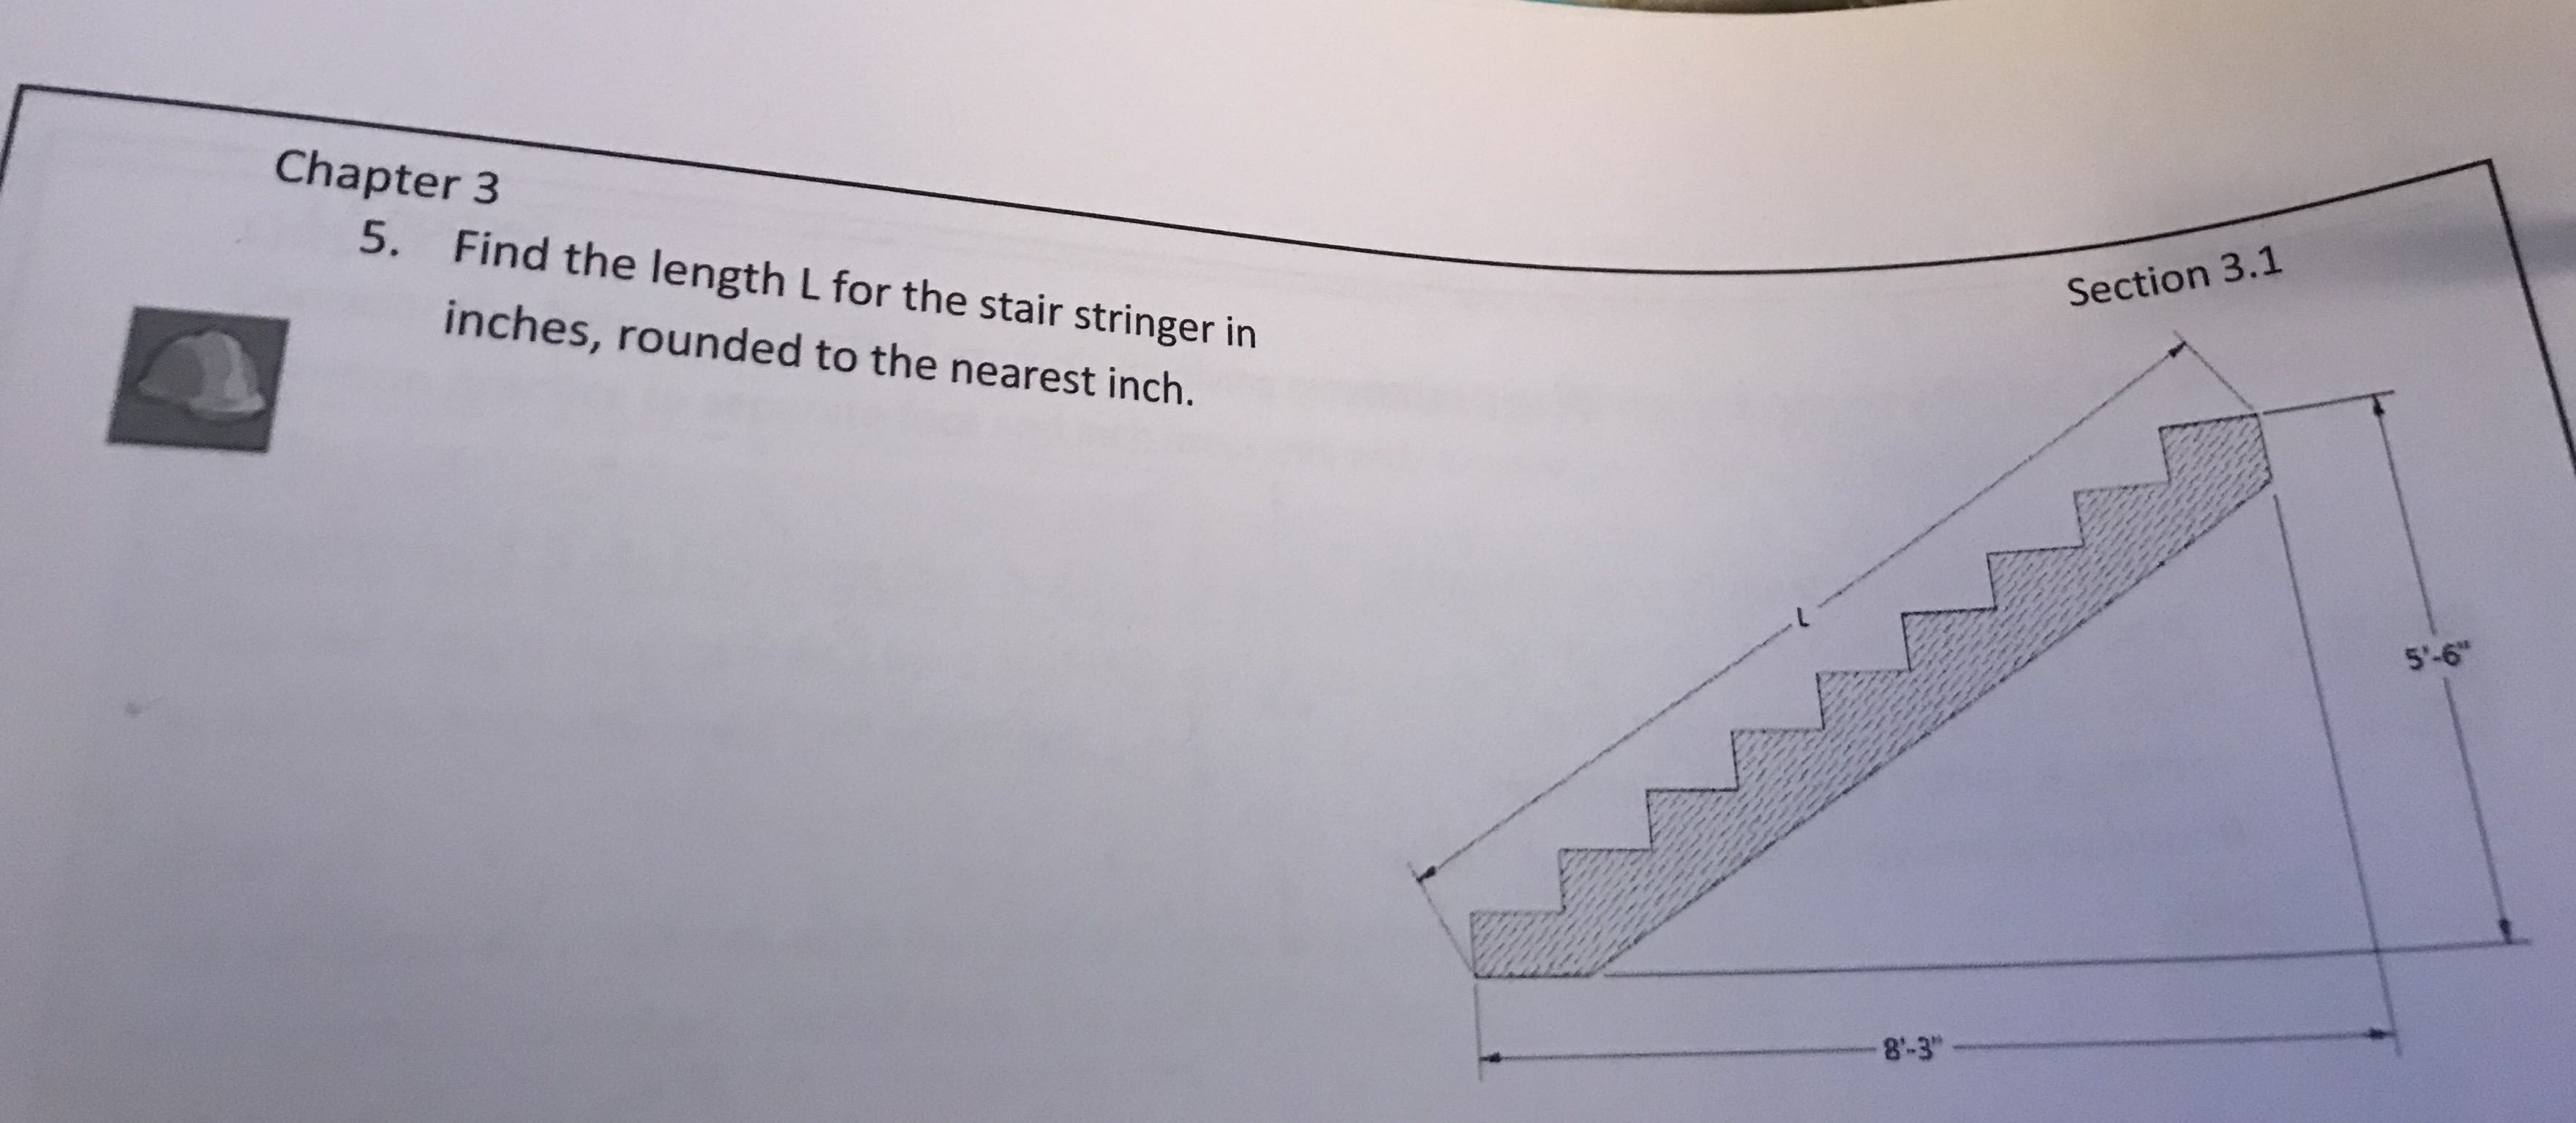 Chapter 3 Find the length Lfor the stair stringer in inches, rounded to the nearest inch. Section 3.1 5'-6 8-3